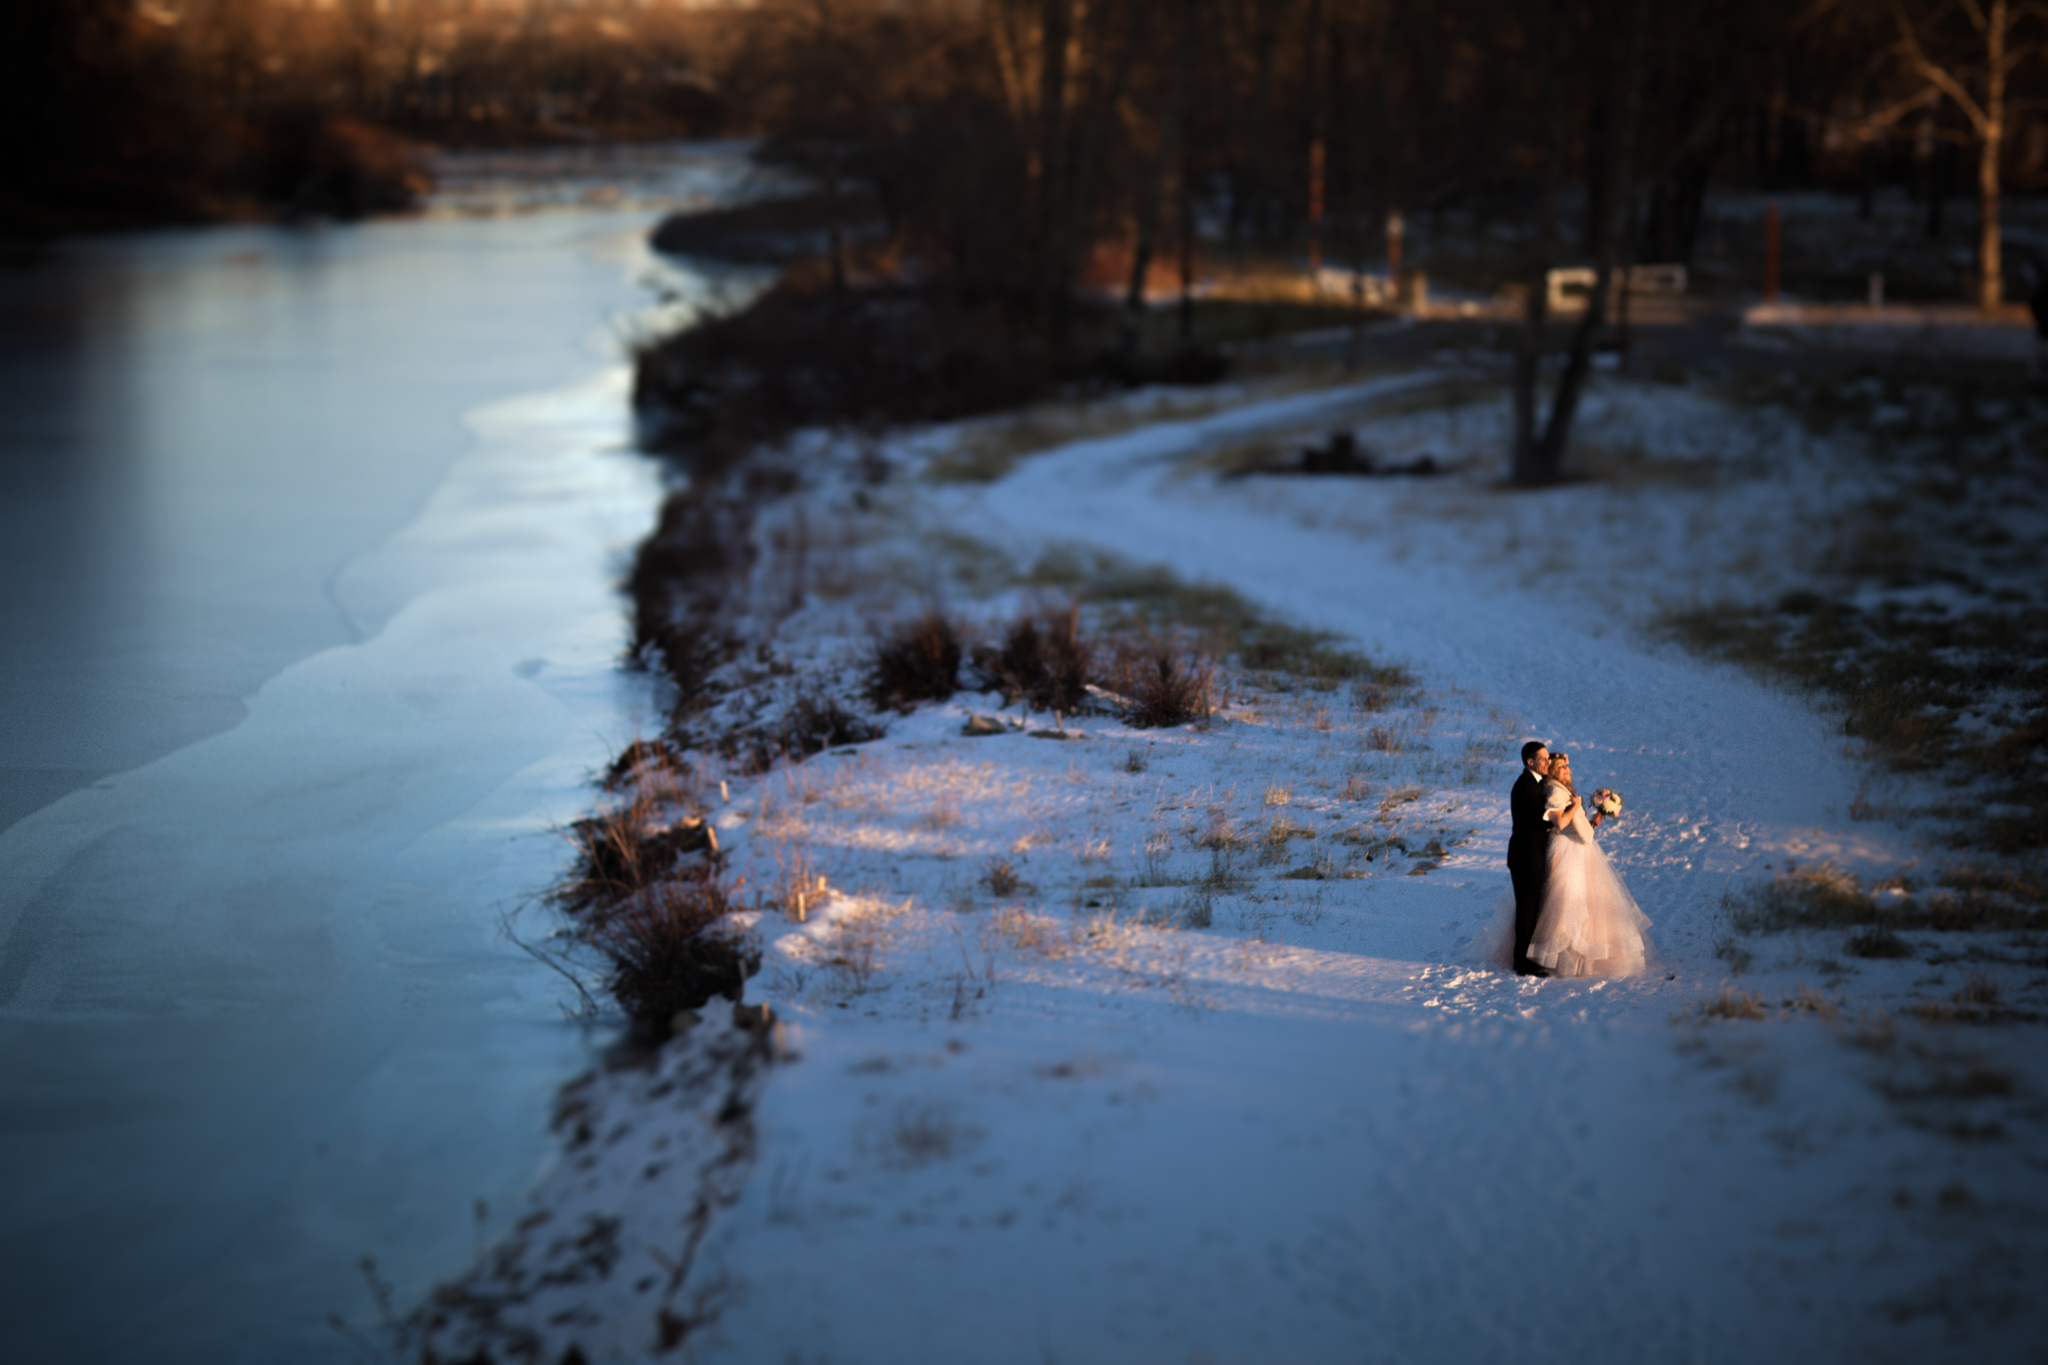 Benefits of planning a winter wedding picture by froze lake